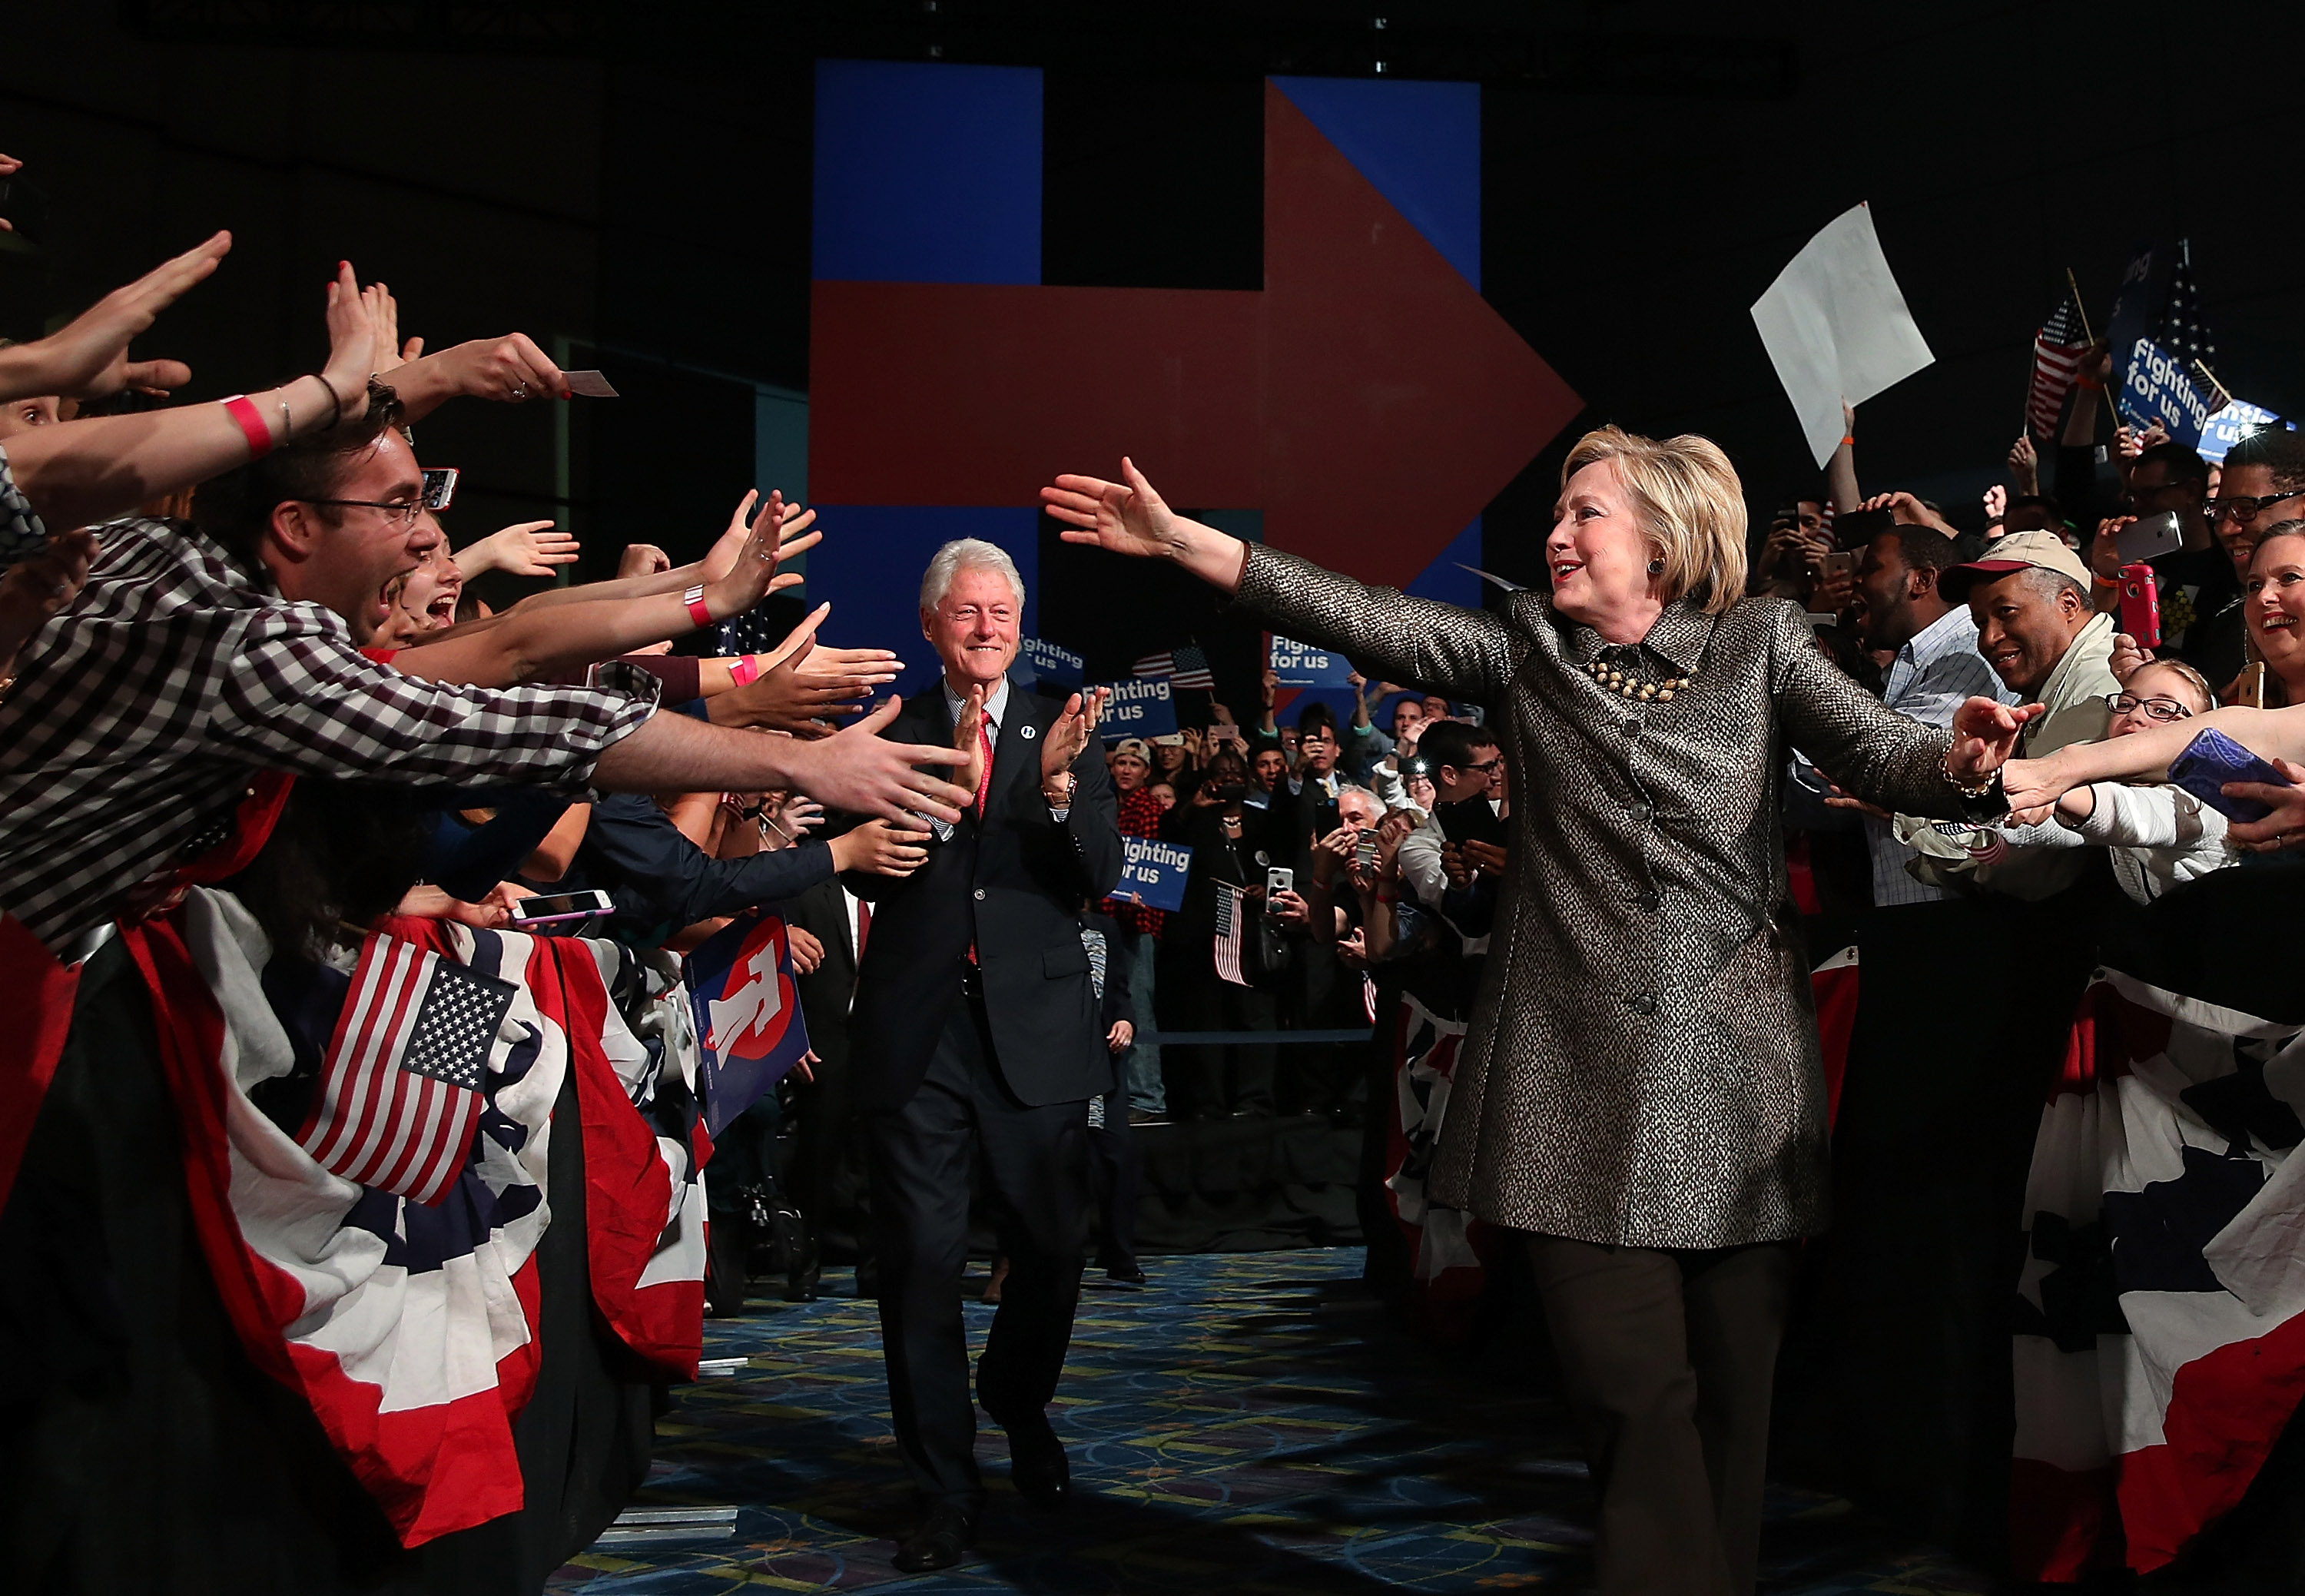 Democratic presidential candidate Hillary Clinton and former U.S. president Bill Clinton greet supporters during a primary night gathering at the Philadelphia Convention Center on April 26, 2016 in Philadelphia, Pennsylvania. Clinton defeated her democratic rival Sen. Bernie Sanders (D-VT) in the Pennsylvania presidential primary.